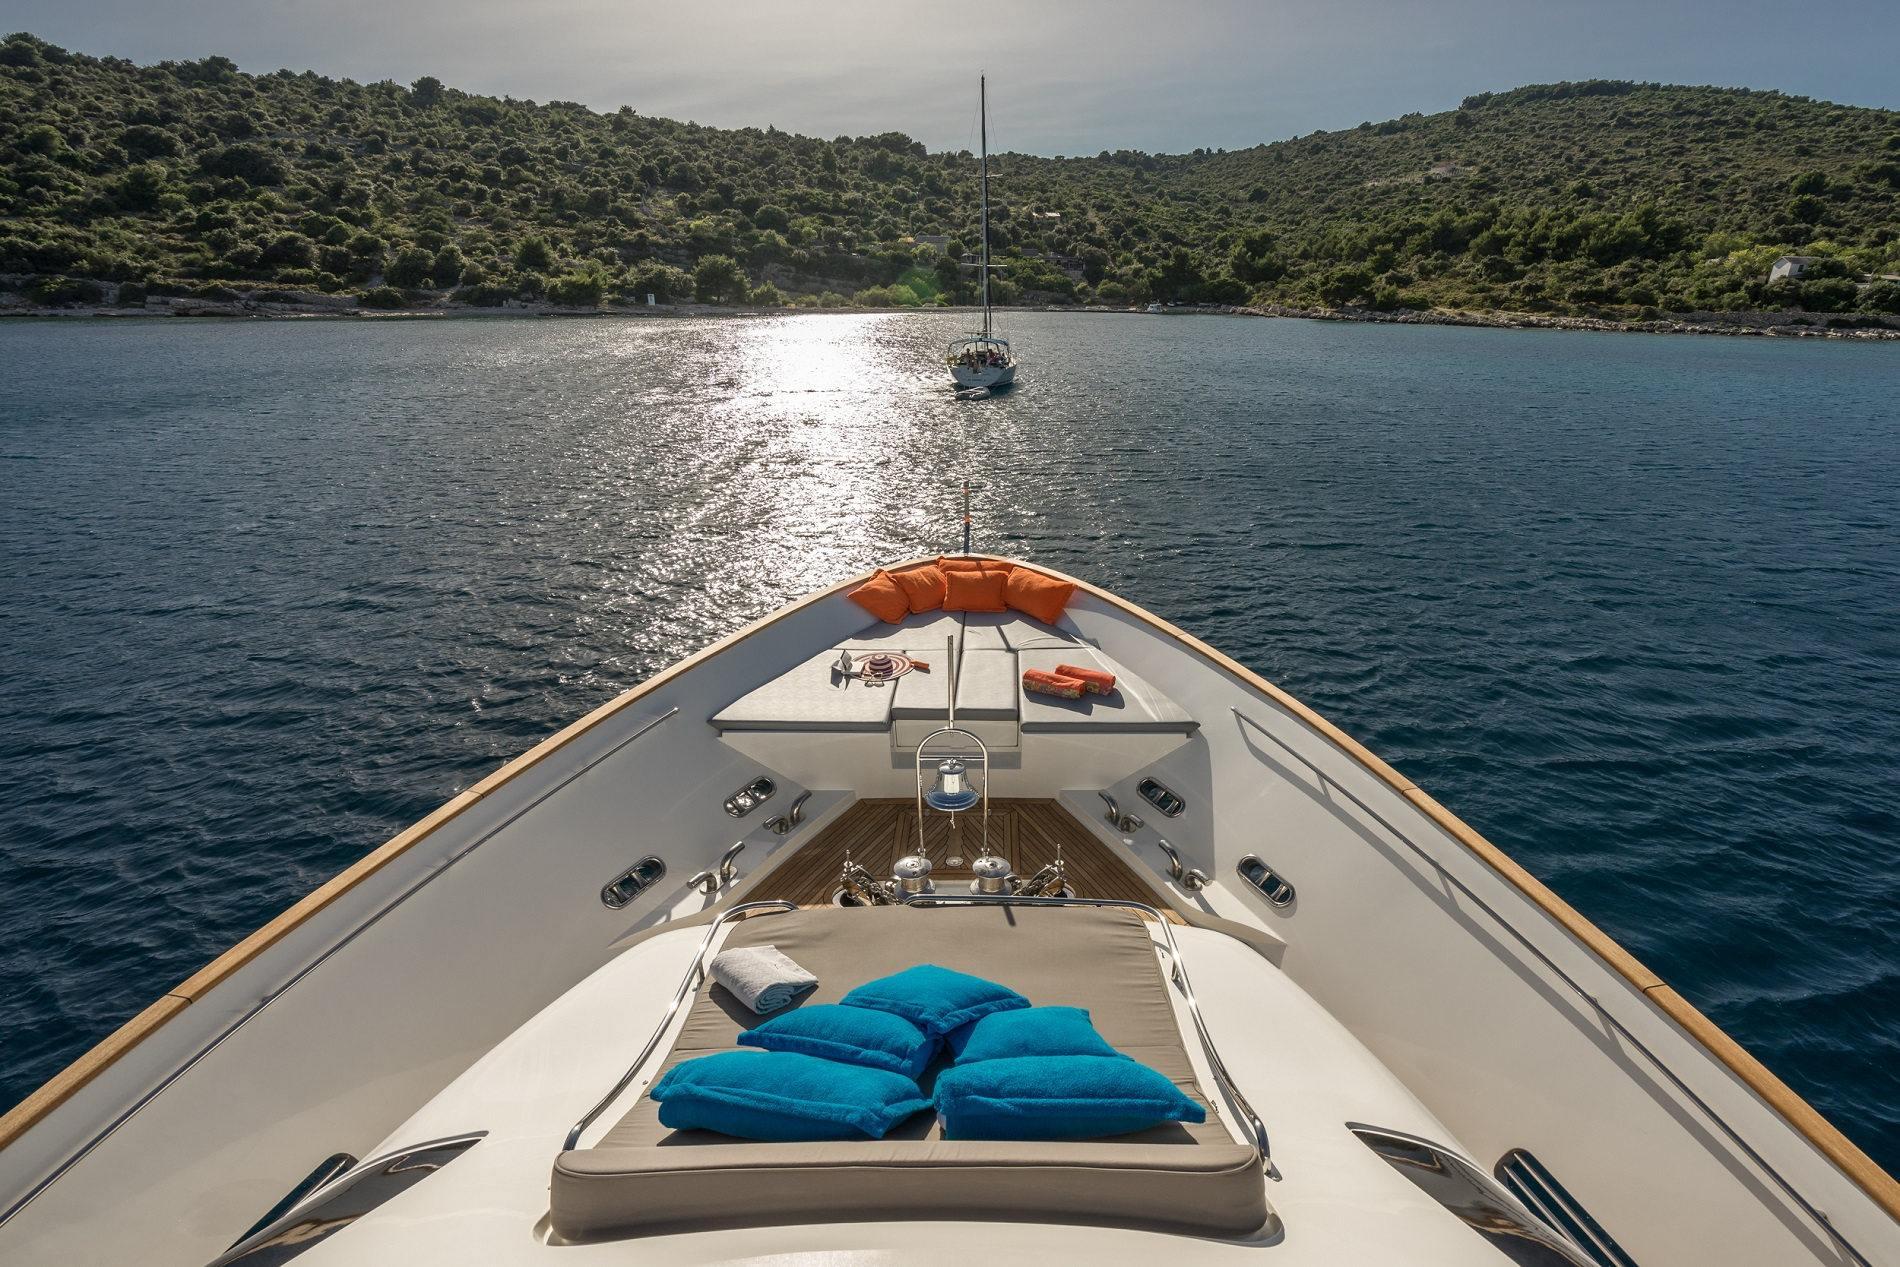 Seventh Sense offering fabulous charter vacations in the Adriatic